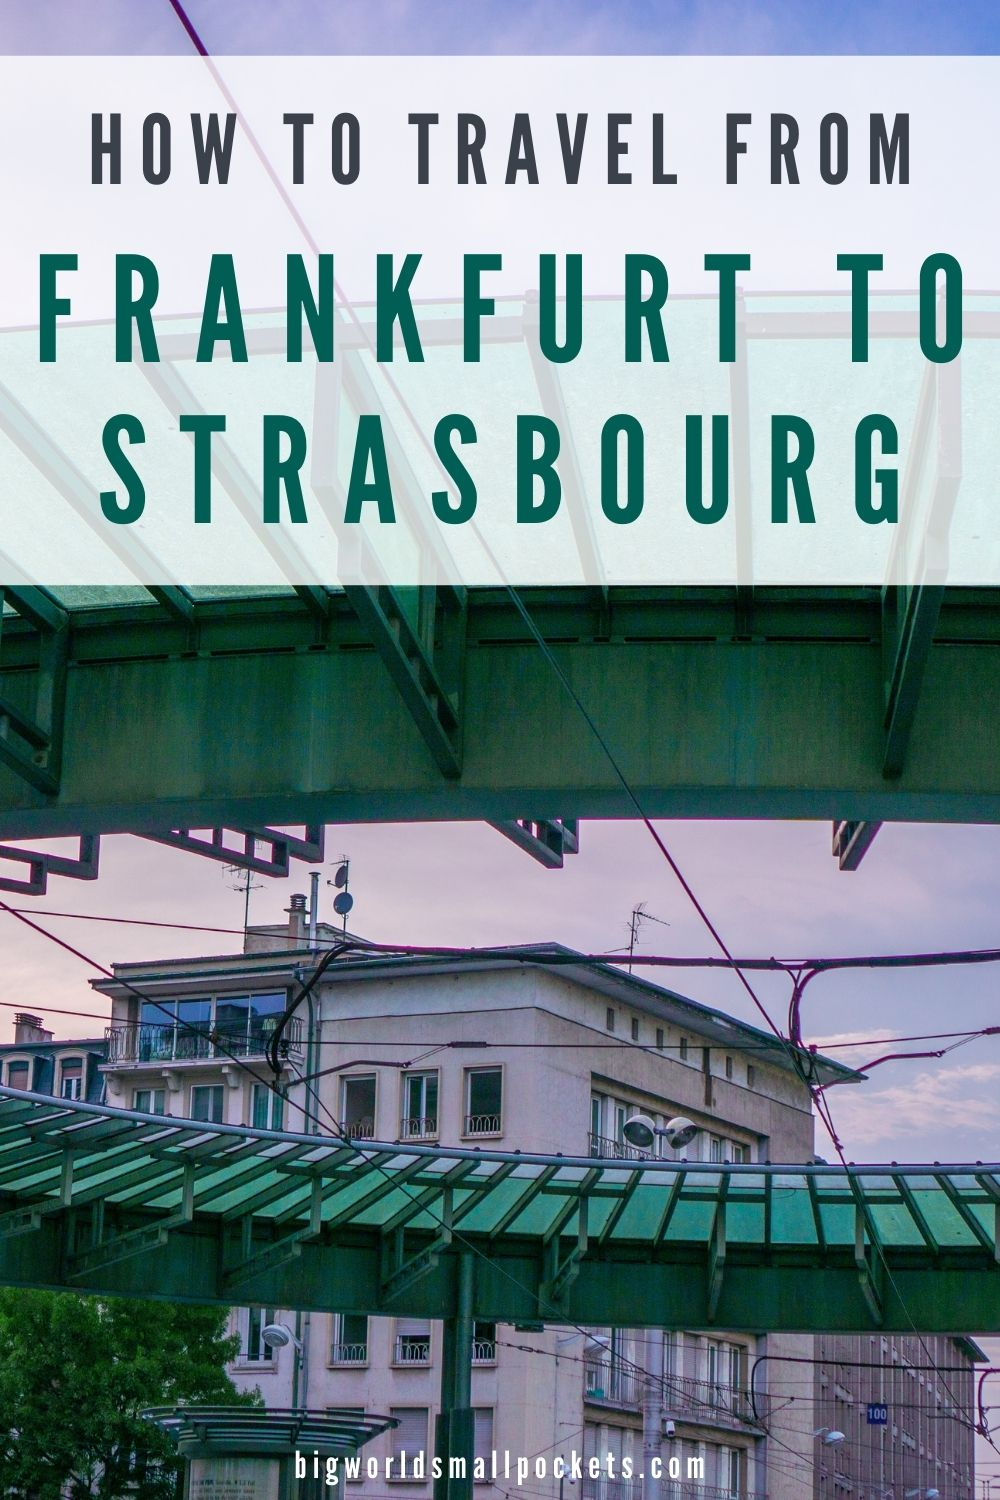 How to Travel from Frankfurt to Strasbourg